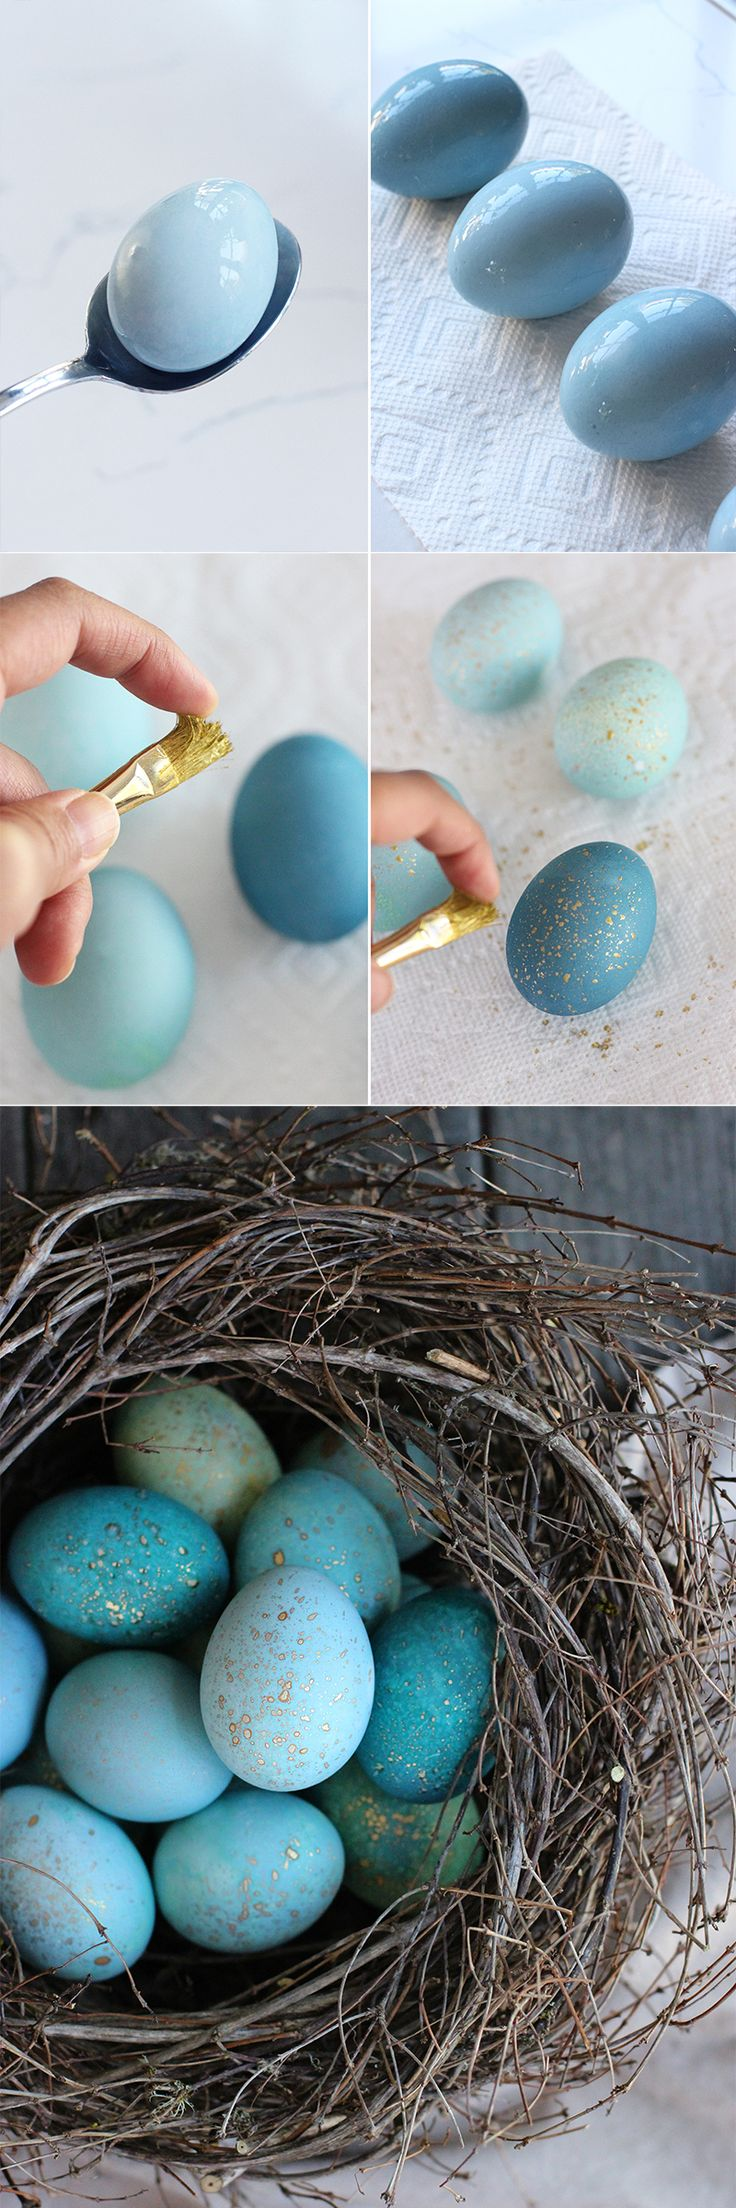 Splatter eggs with gold paint. C would love that.